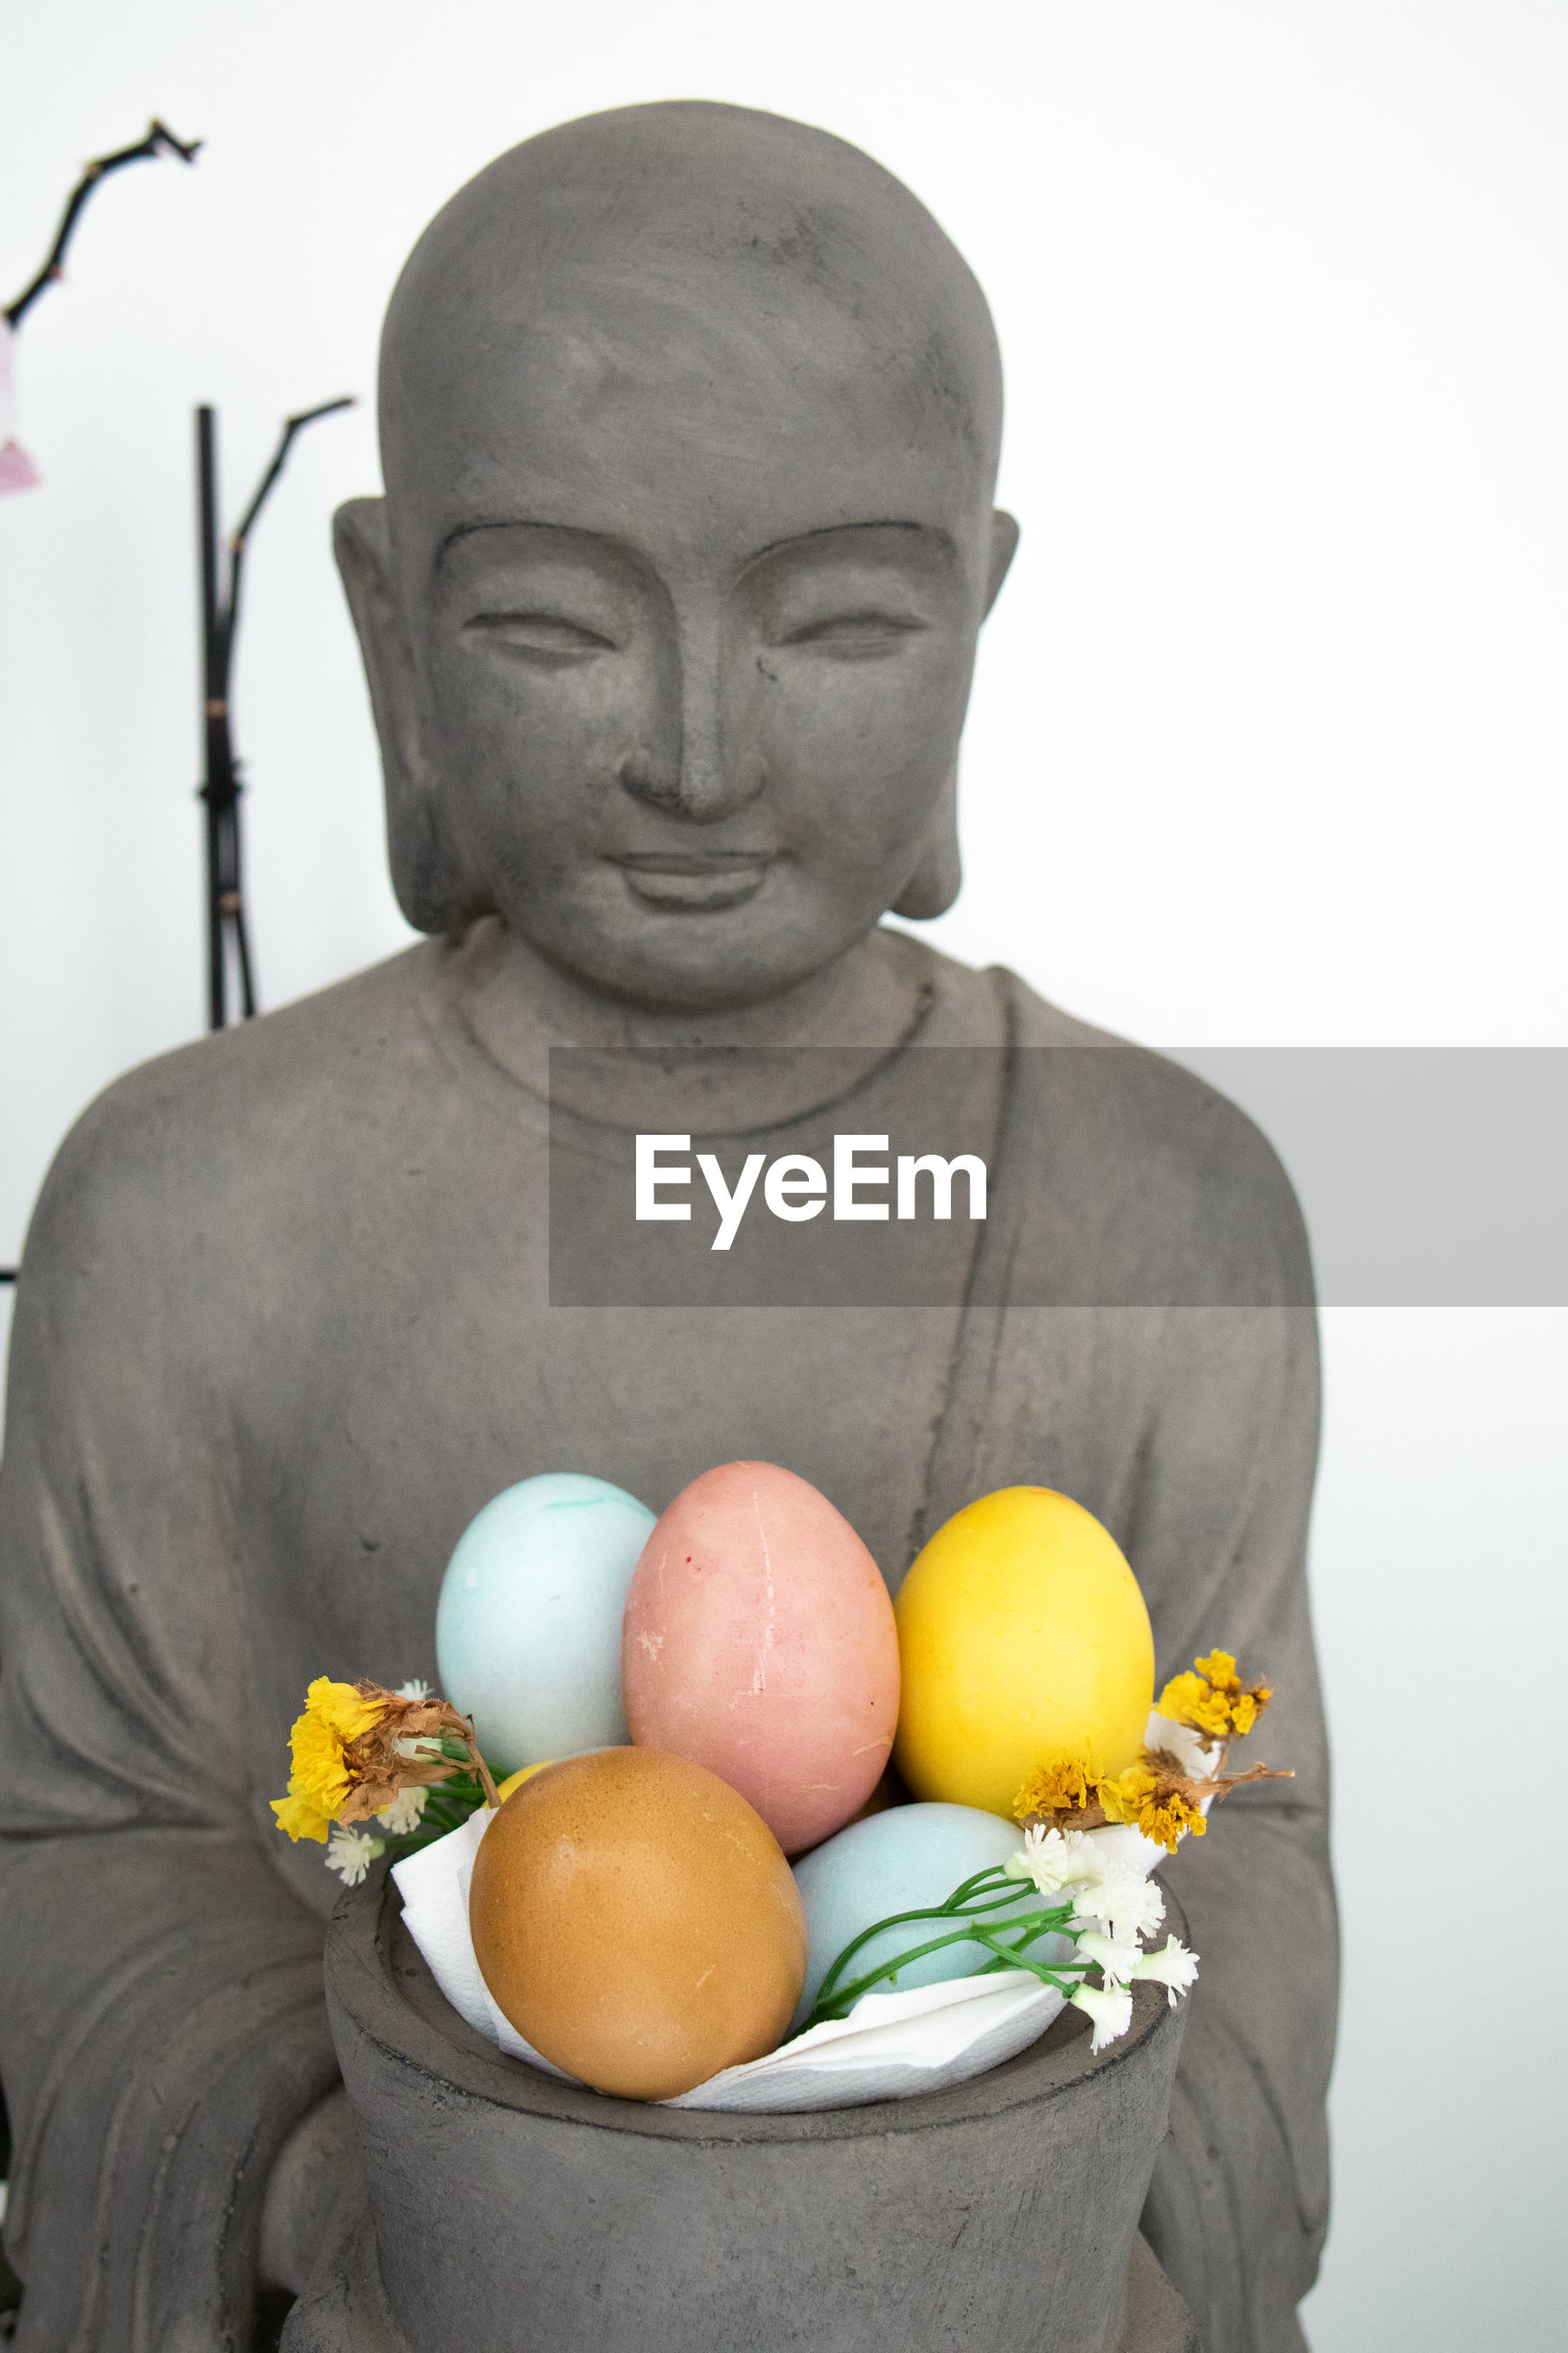 Buddhist statue holding a basket of easter eggs painted with eco products